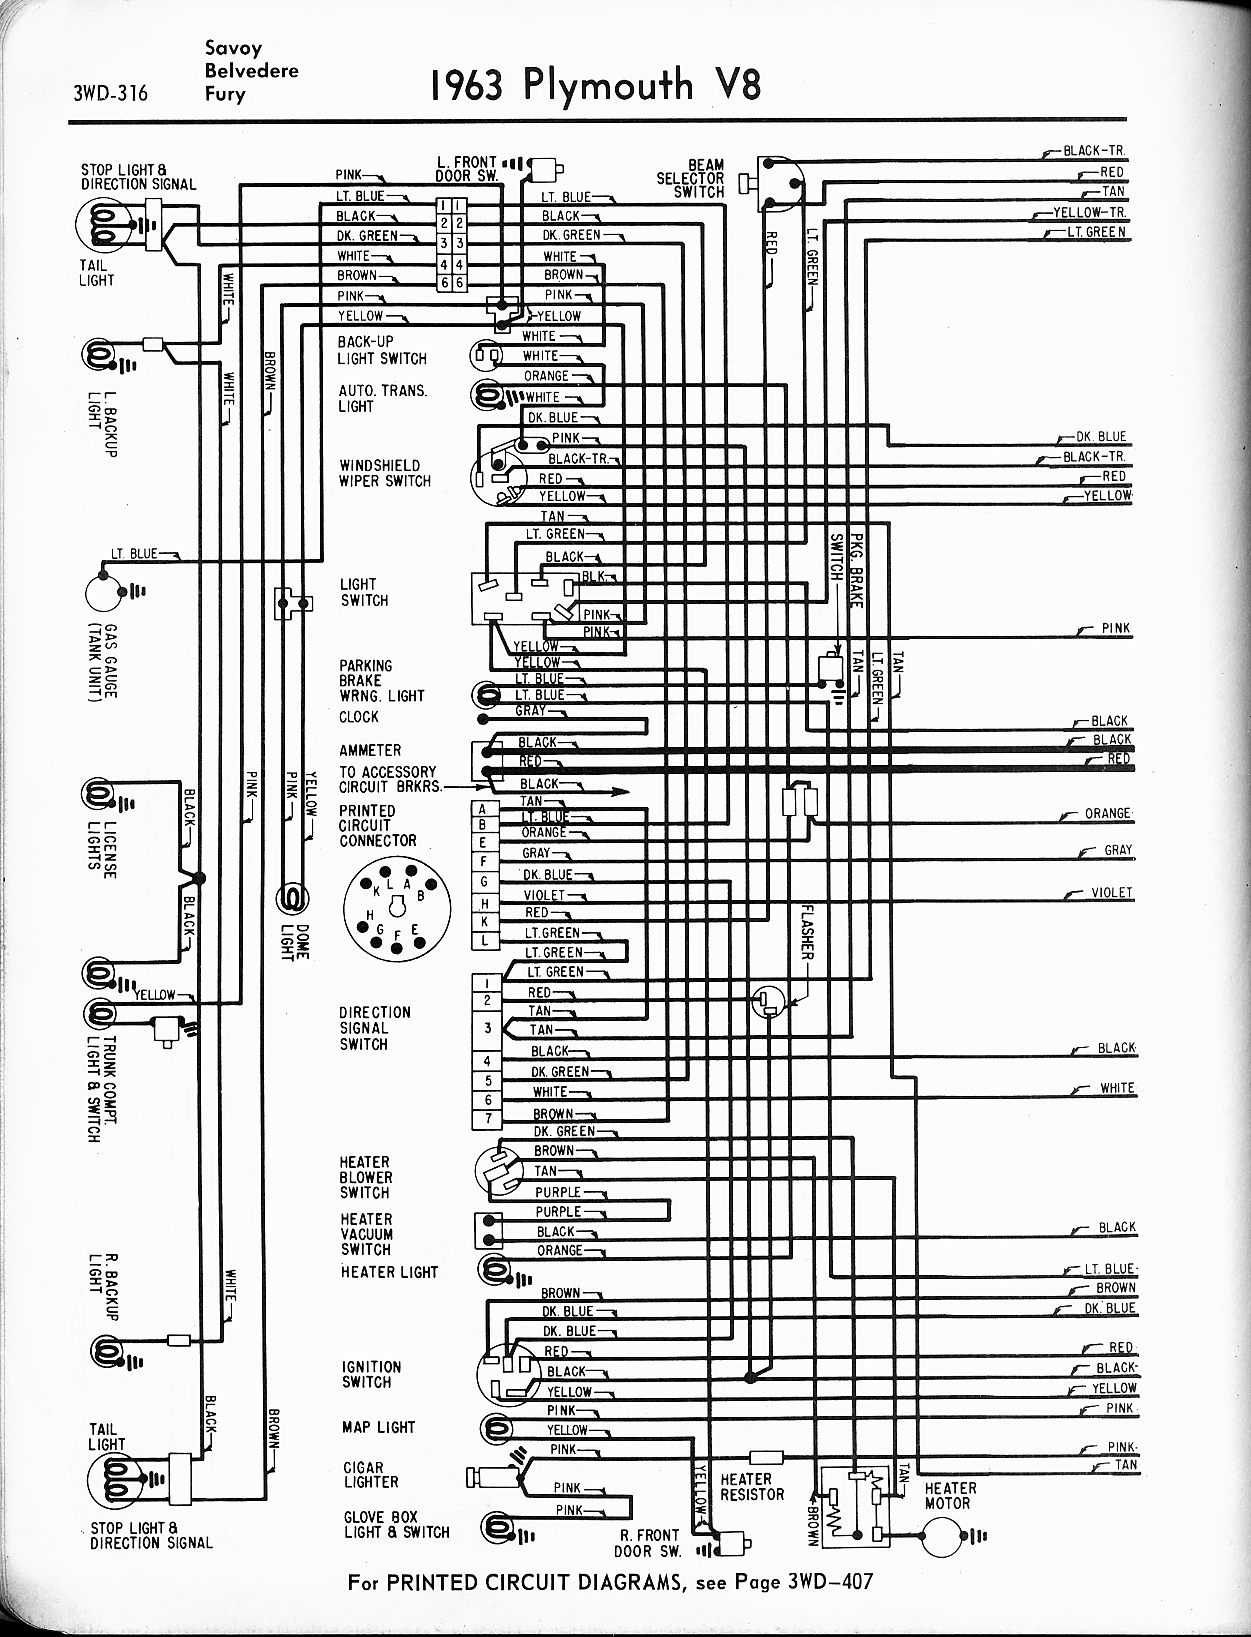 1965 pontiac wiring diagram data wiring diagram u2022 rh vitaleapp co 1965 pontiac wiring diagram 1966 pontiac bonneville wiring diagram